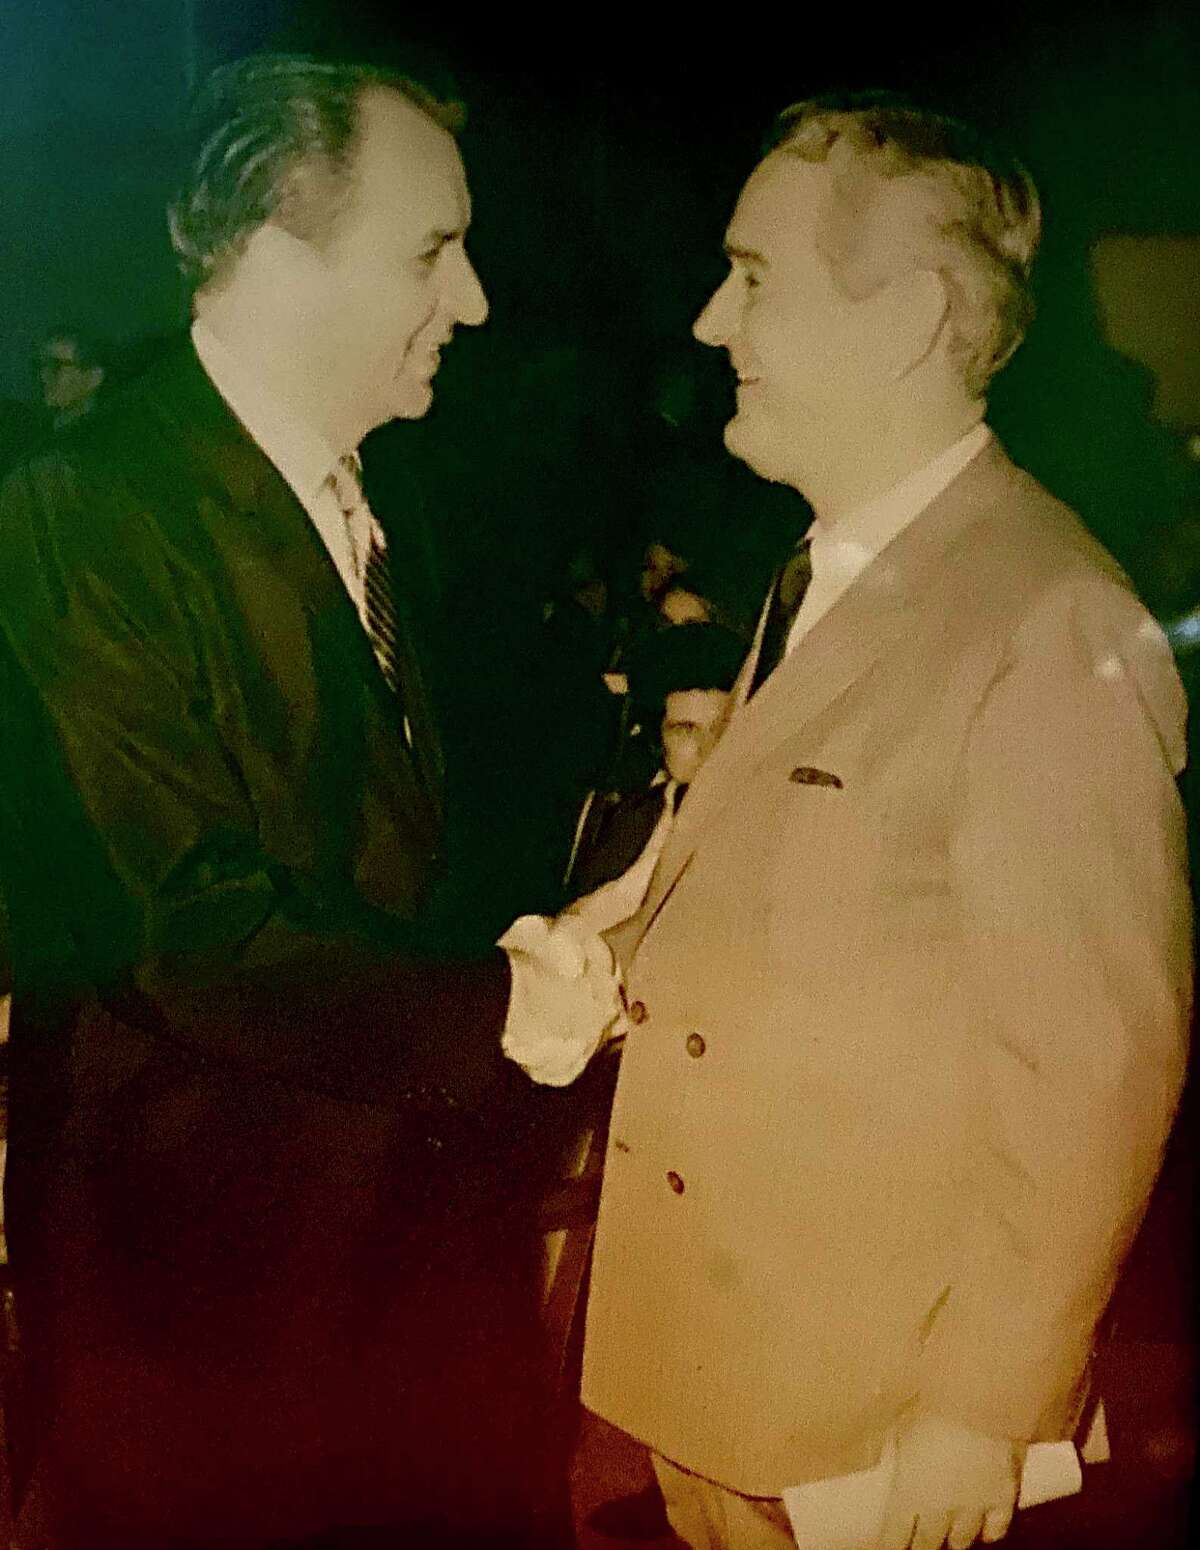 Thomas Morrow Reavley with Gov. John Connally in Austin, date unknown. In 1964, Connally appointed Reavley to the 167th District Court of Travis County.